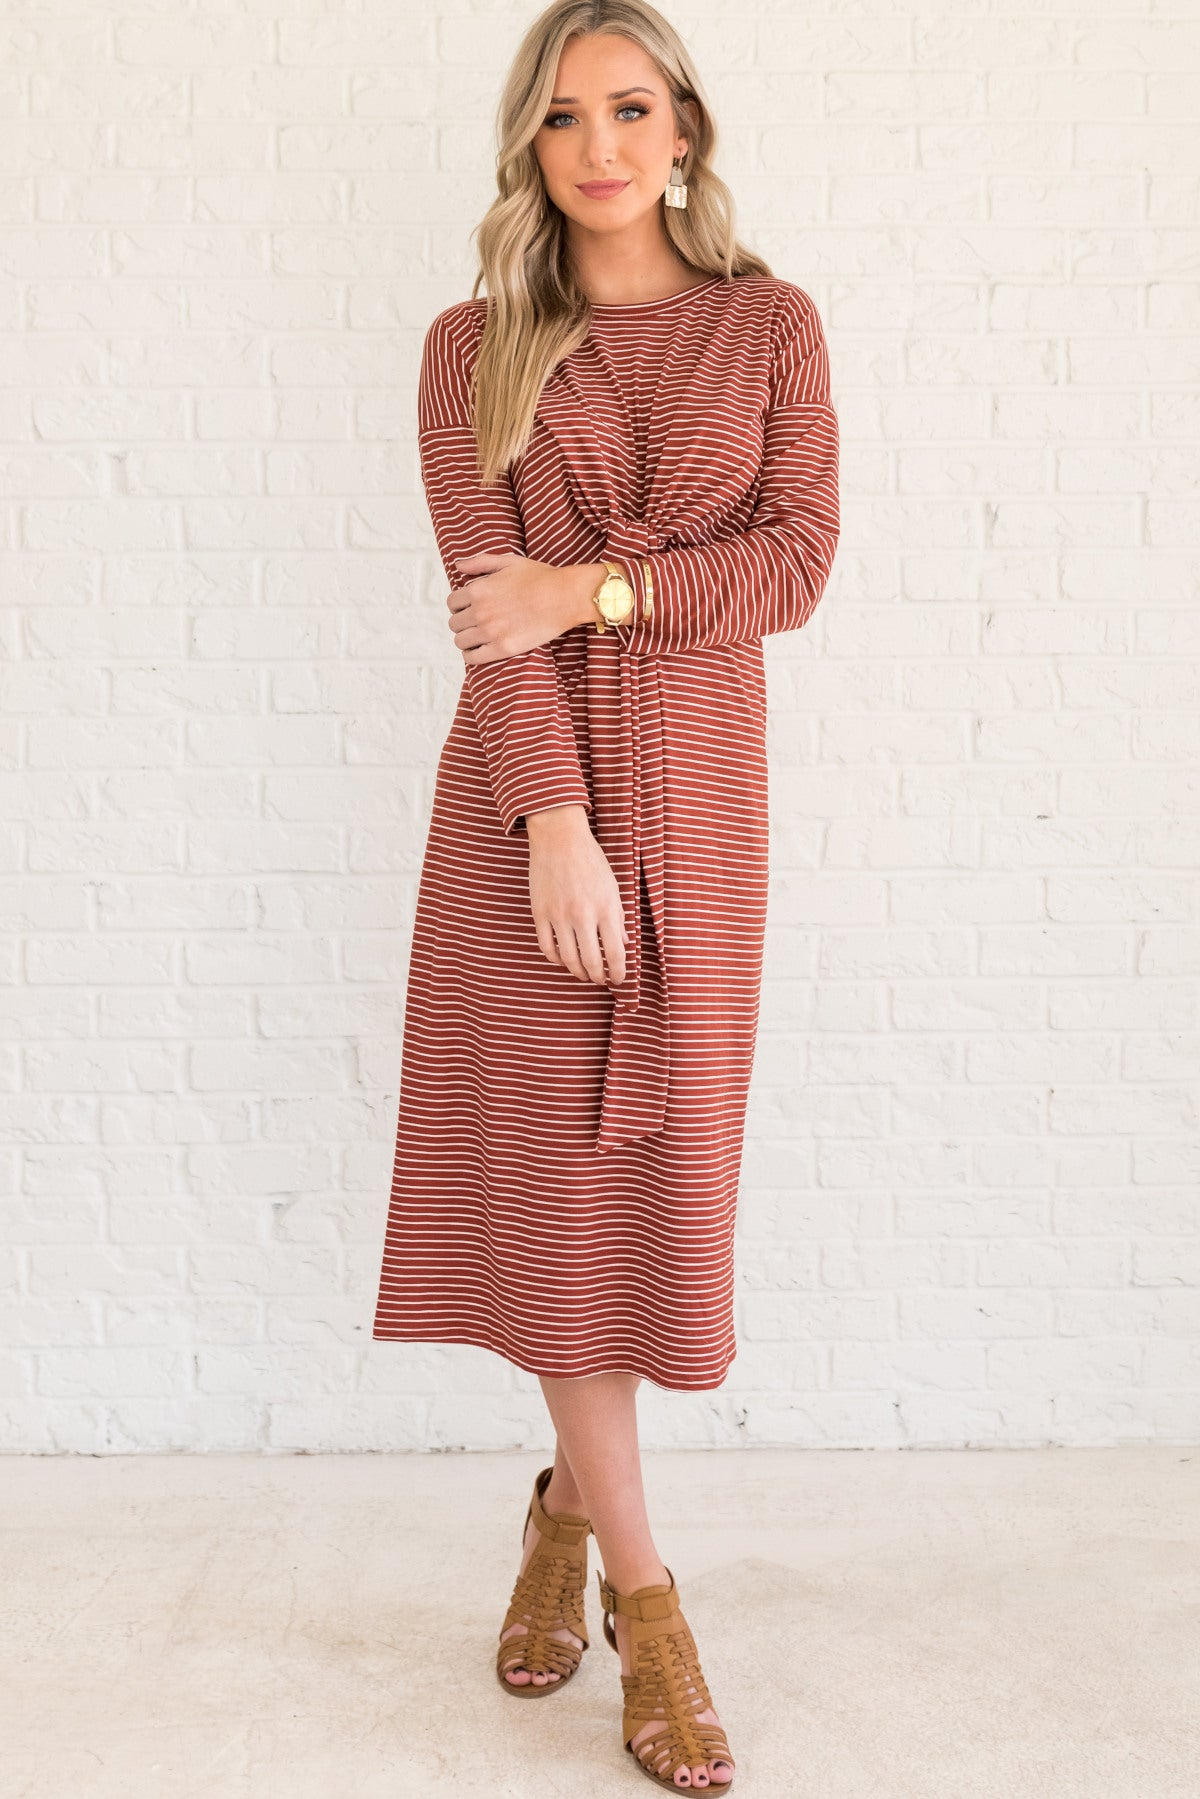 d1f688fb3b36 Rust Red and White Striped Midi Dresses for Women